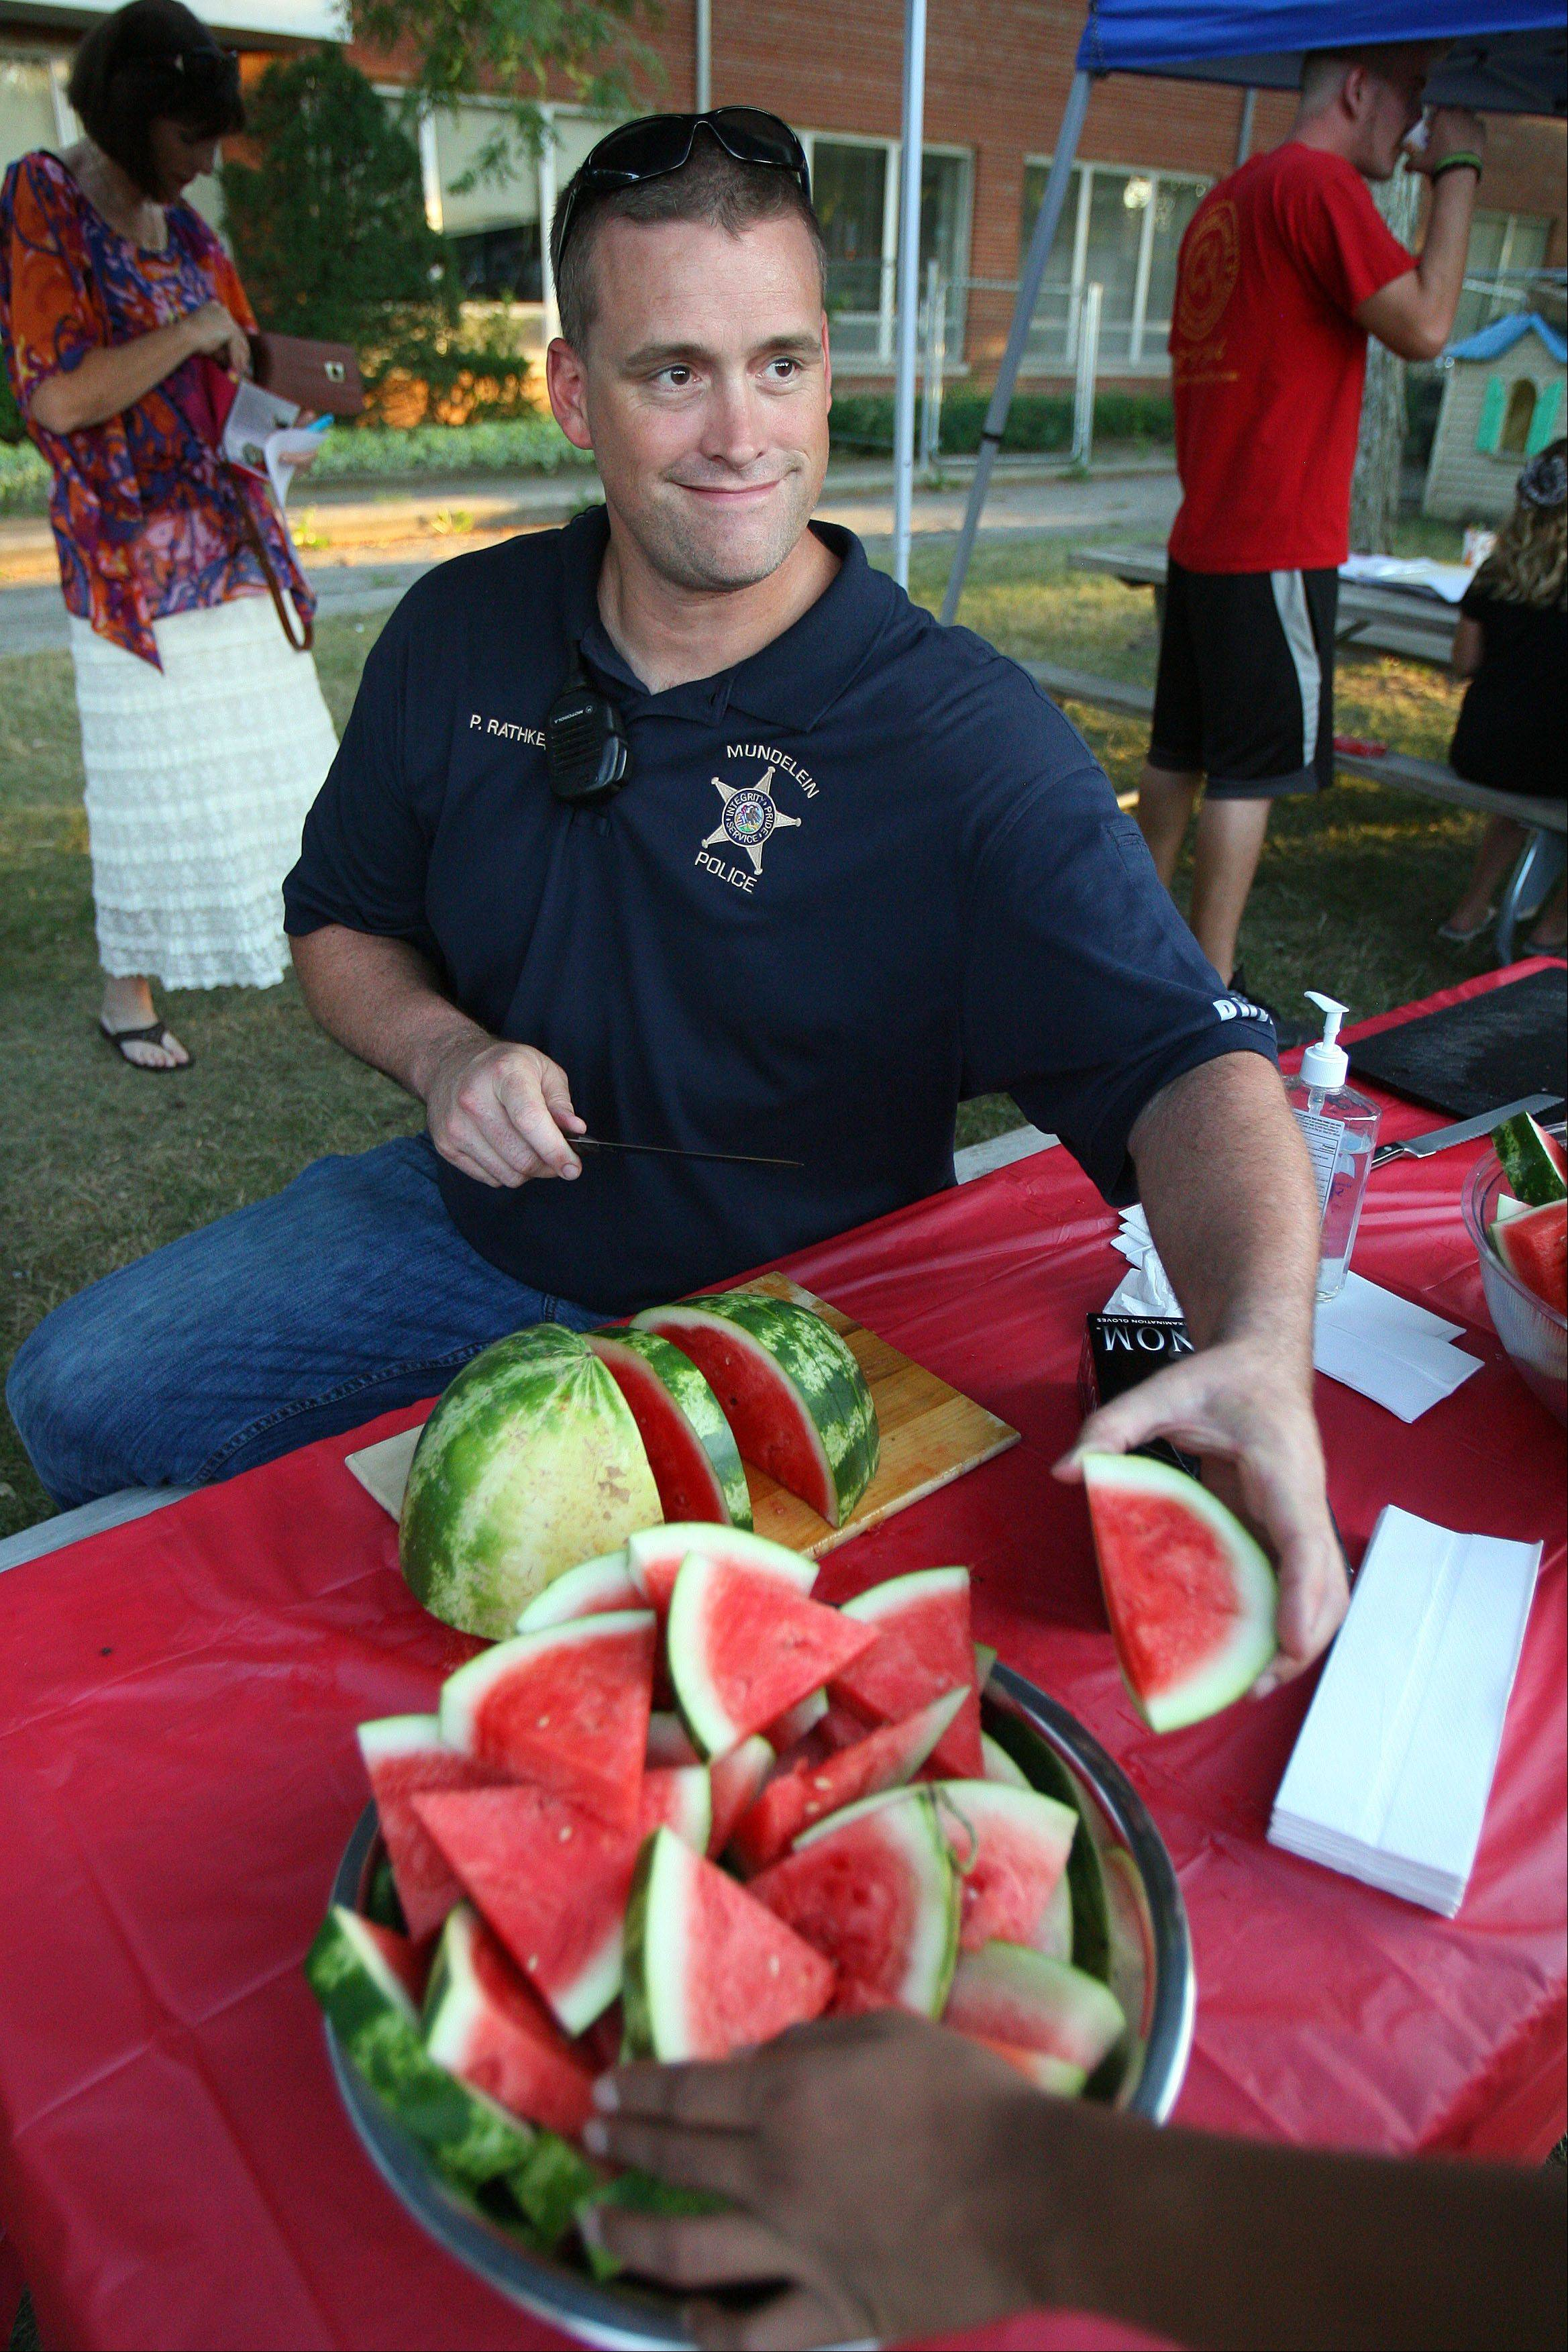 Mundelein Police officer Phil Rathke offers watermelon during a National Night Out event at Santa Maria del Popolo Catholic Church in Mundelein Tuesday night.